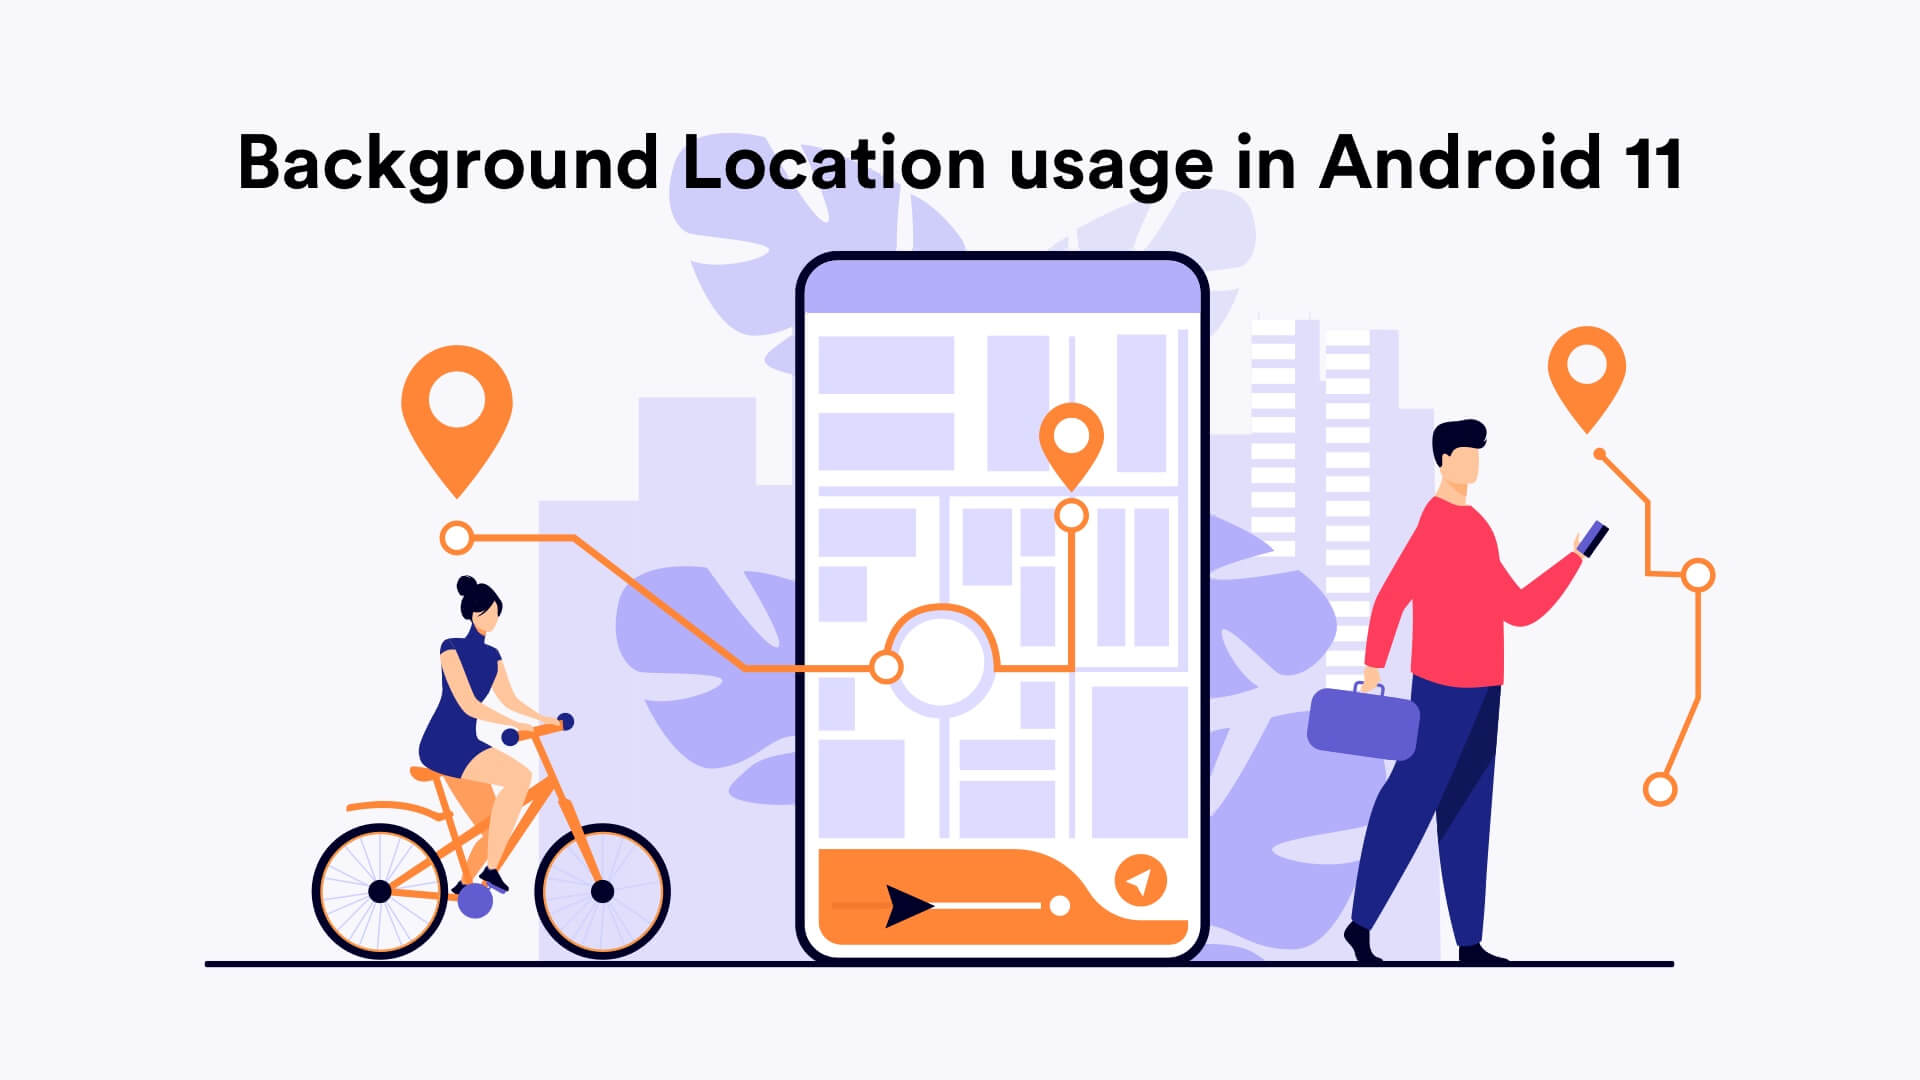 Background Location usage in Android 11